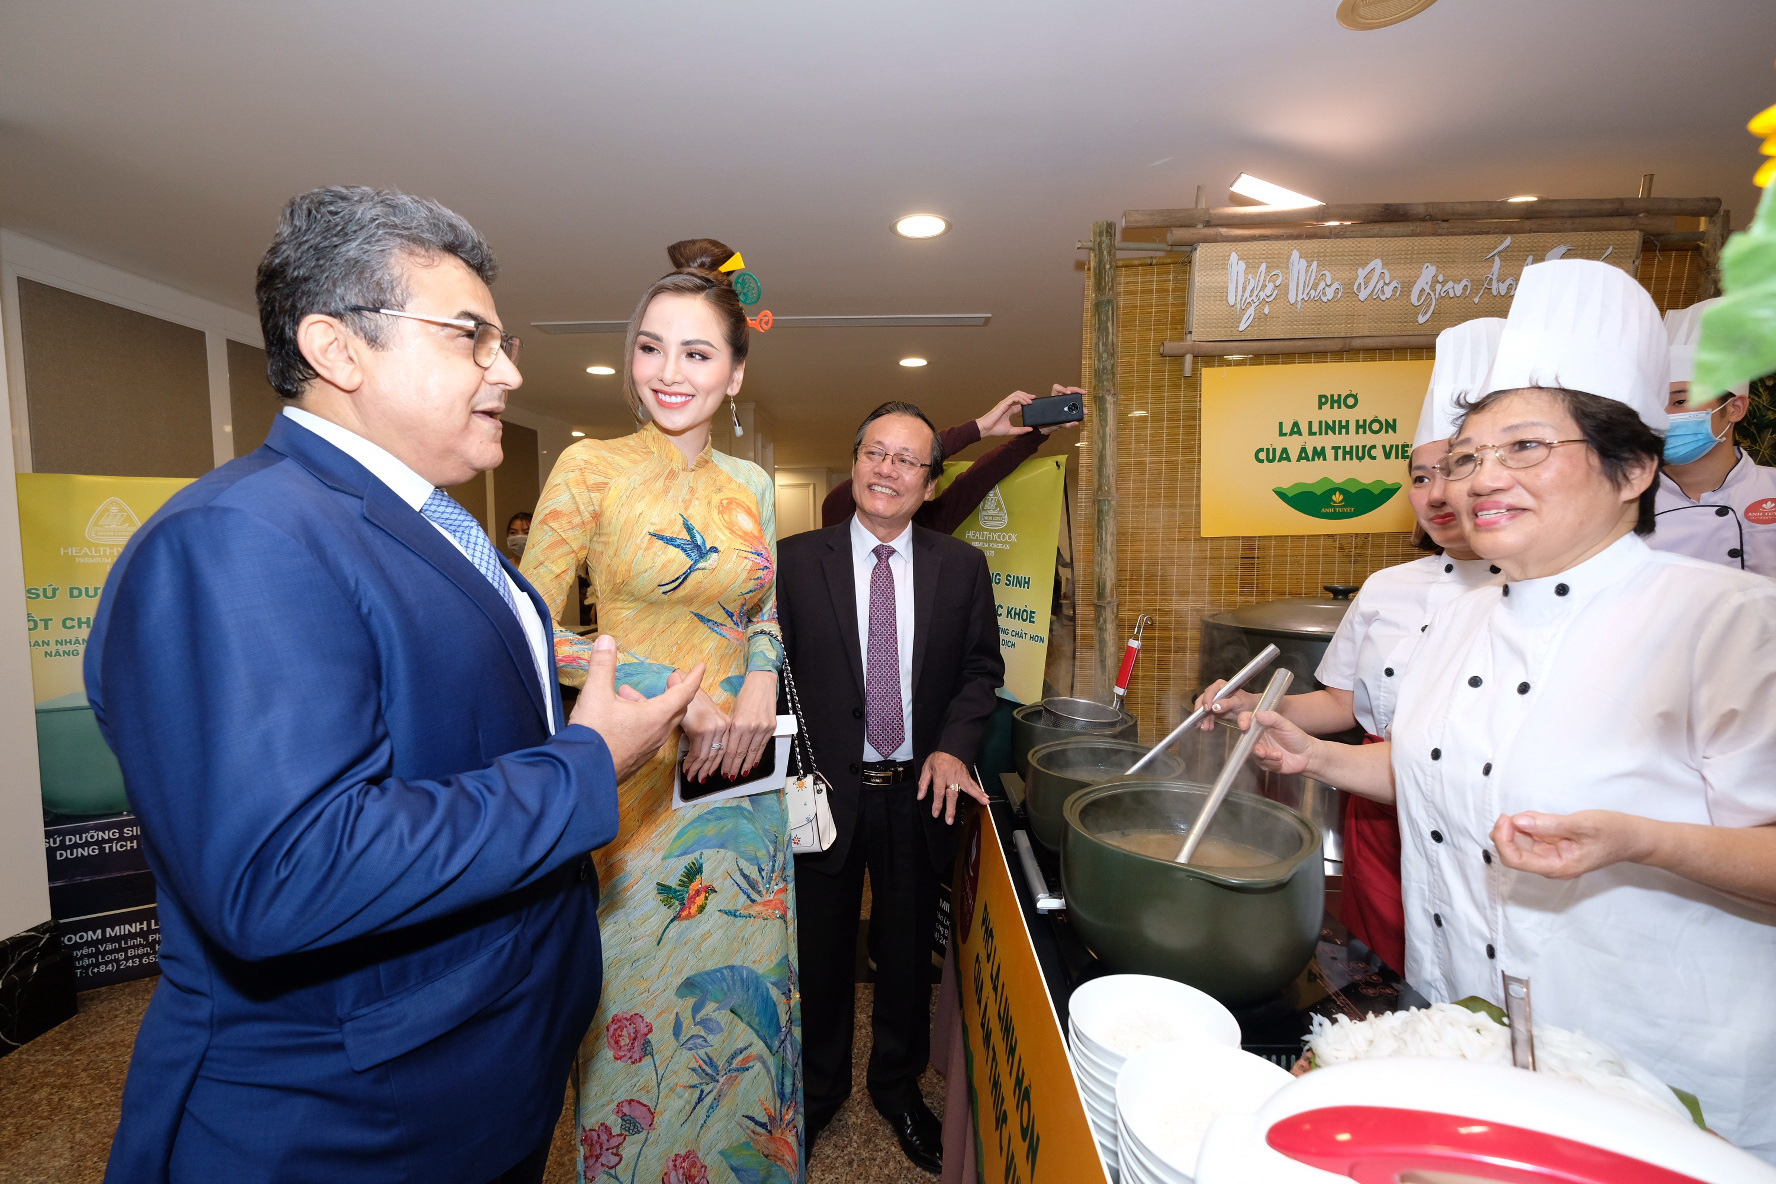 'The Story of Pho' gala dinner organized for diplomatic missions in Hanoi